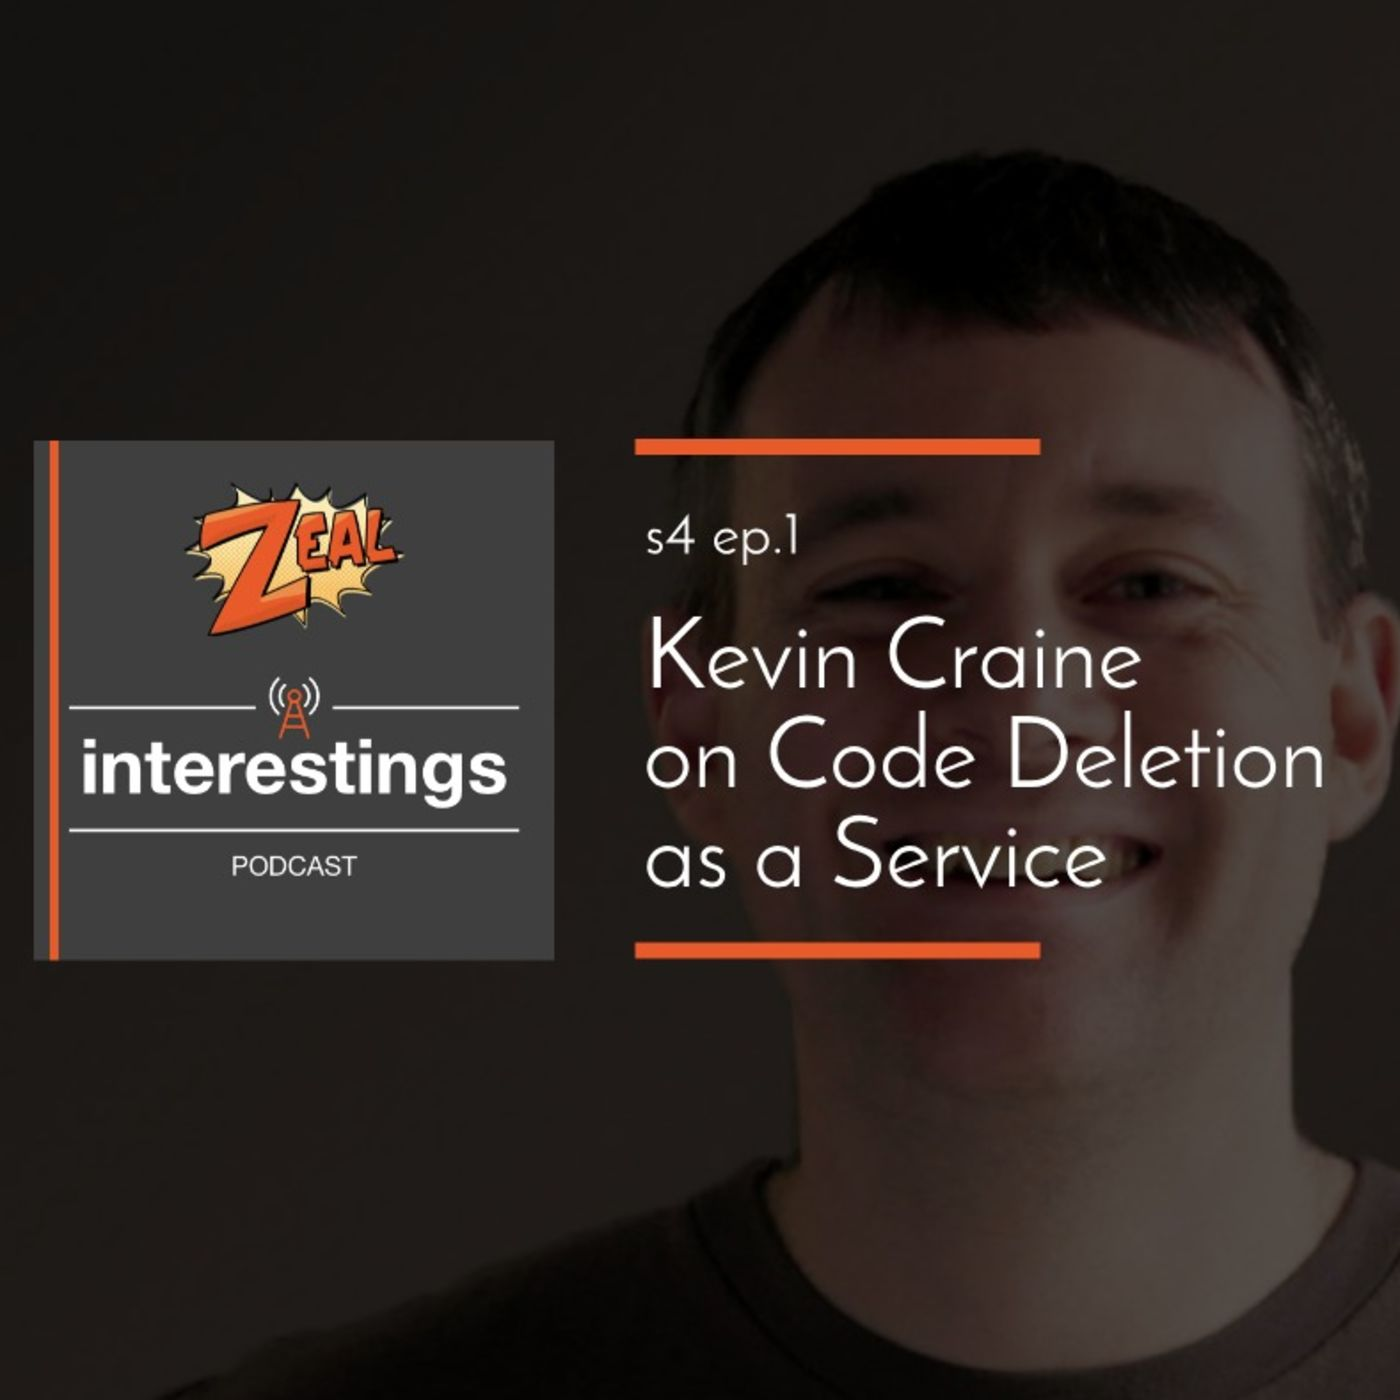 Kevin Craine on Code Deletion as a Service